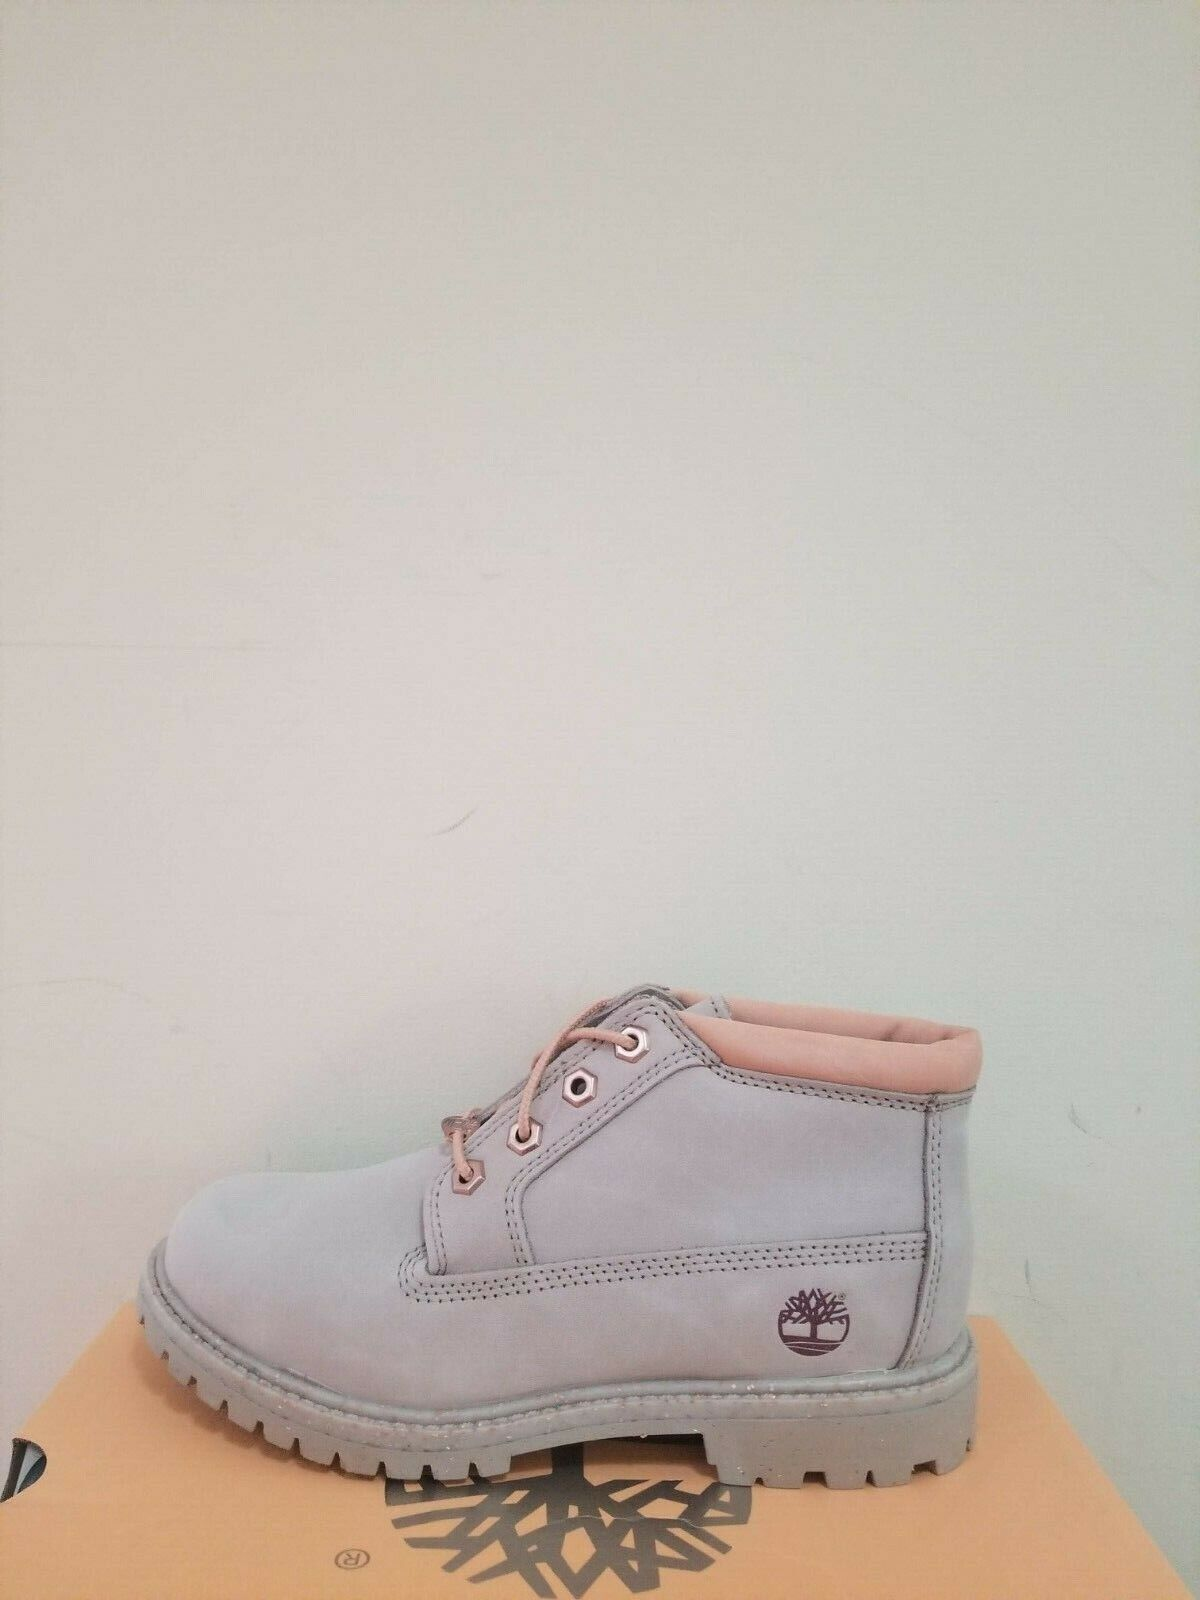 Timberland Women's Ice Cream Collection Nellie Double Sole Waterproof Boots NIB